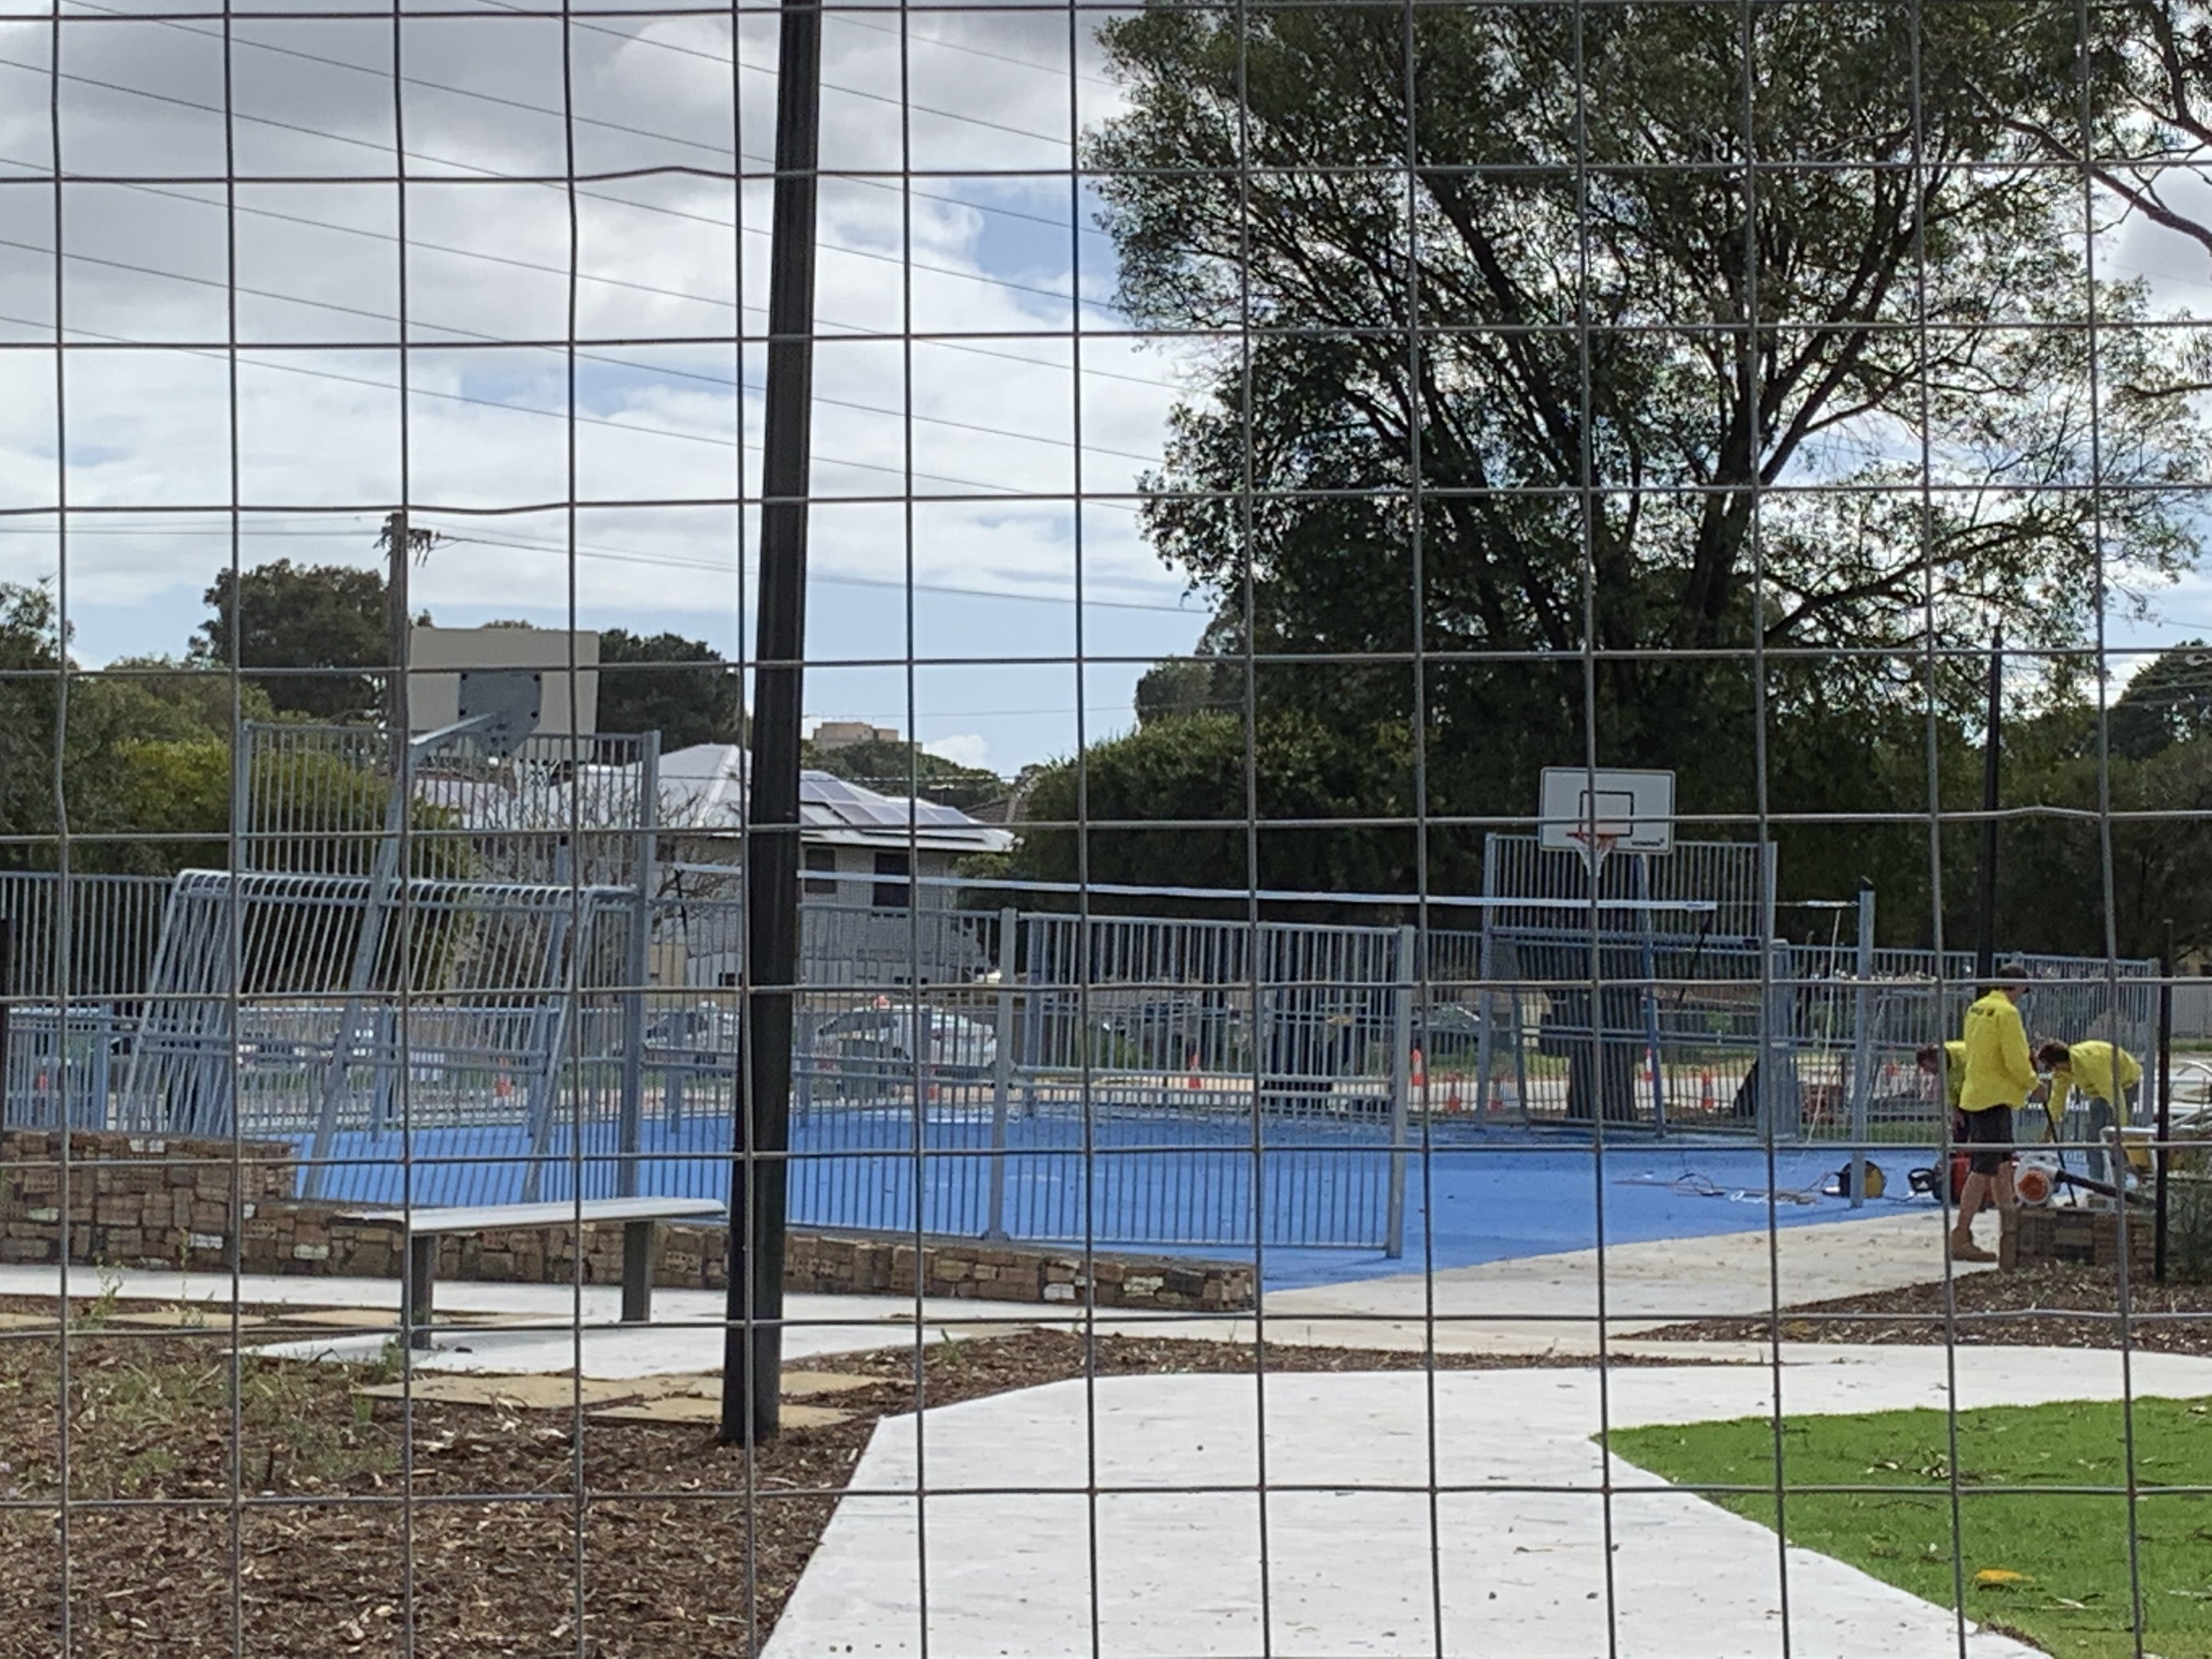 11 More works on the multi-sports hardcourt